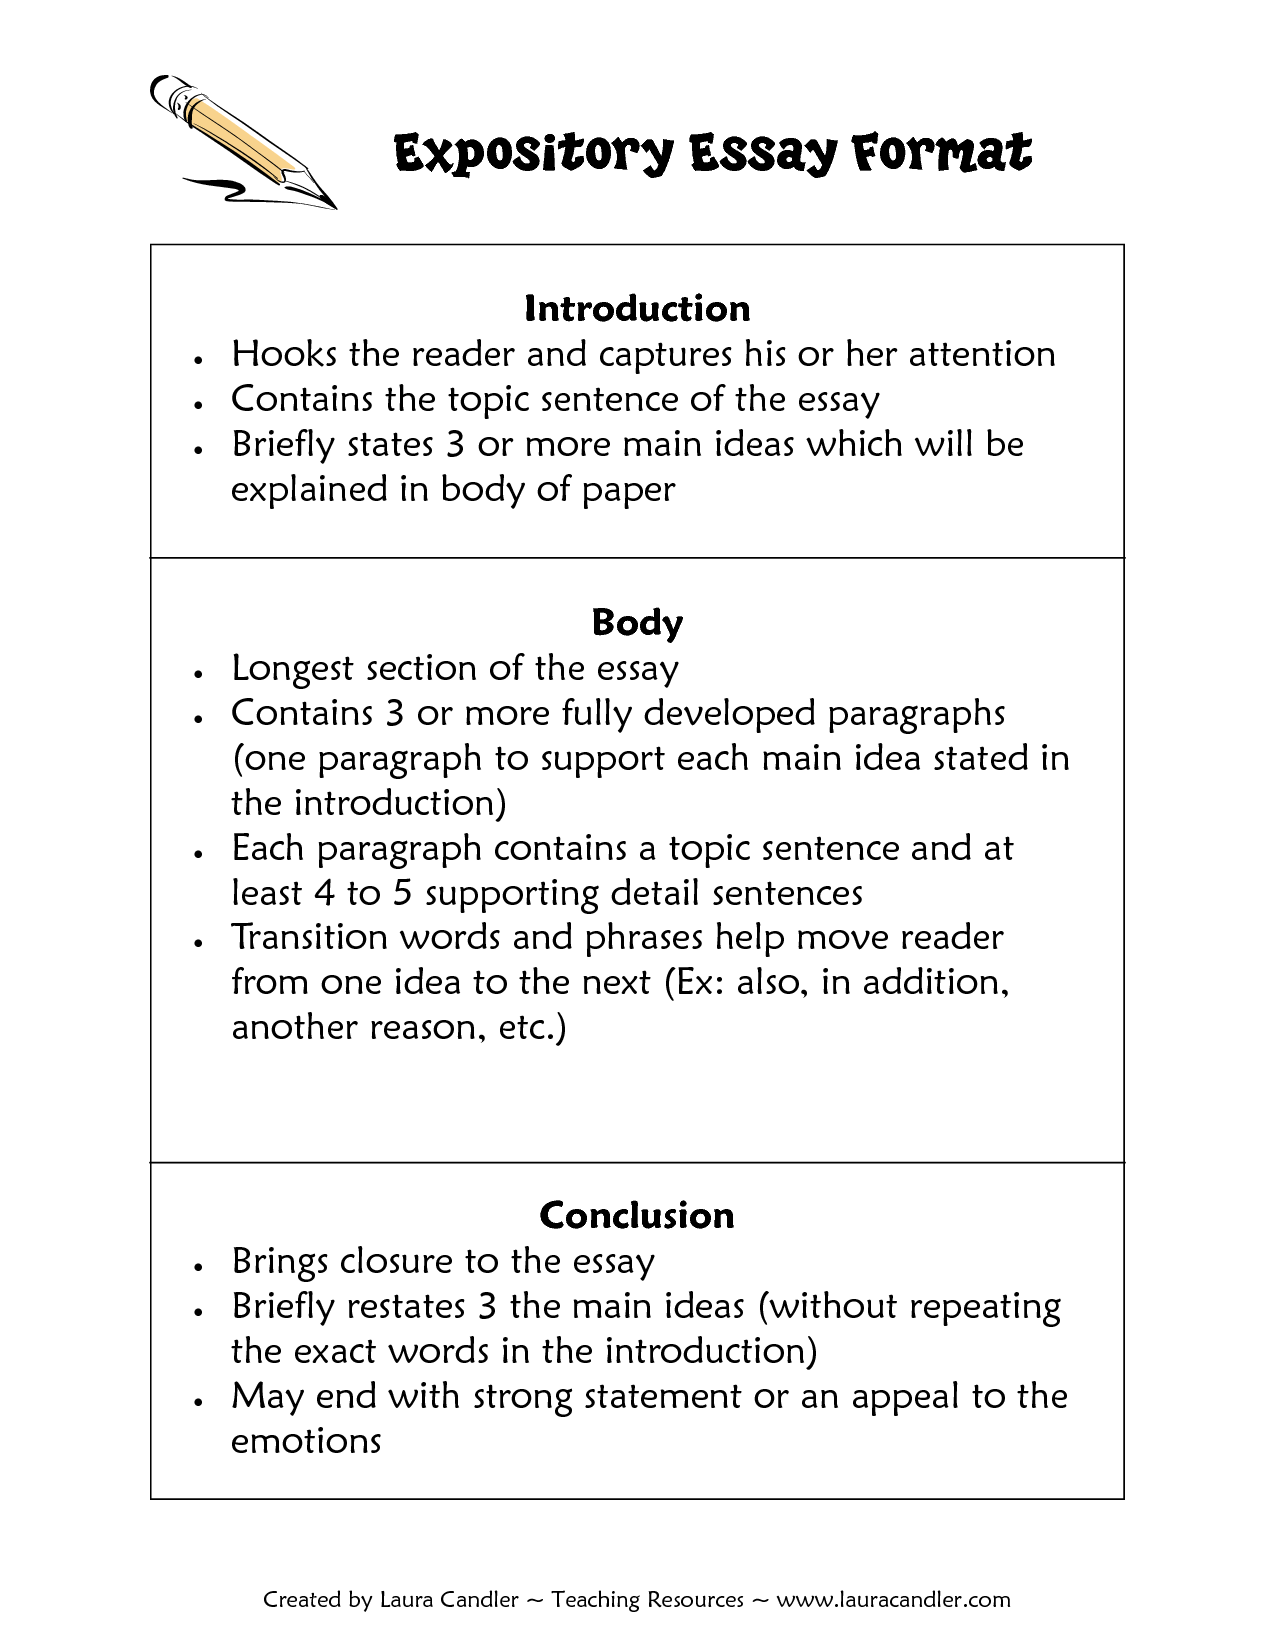 007 Essay Example Expository Format How To Write An Frightening Informational Informative 6th Grade 7th Thesis Full